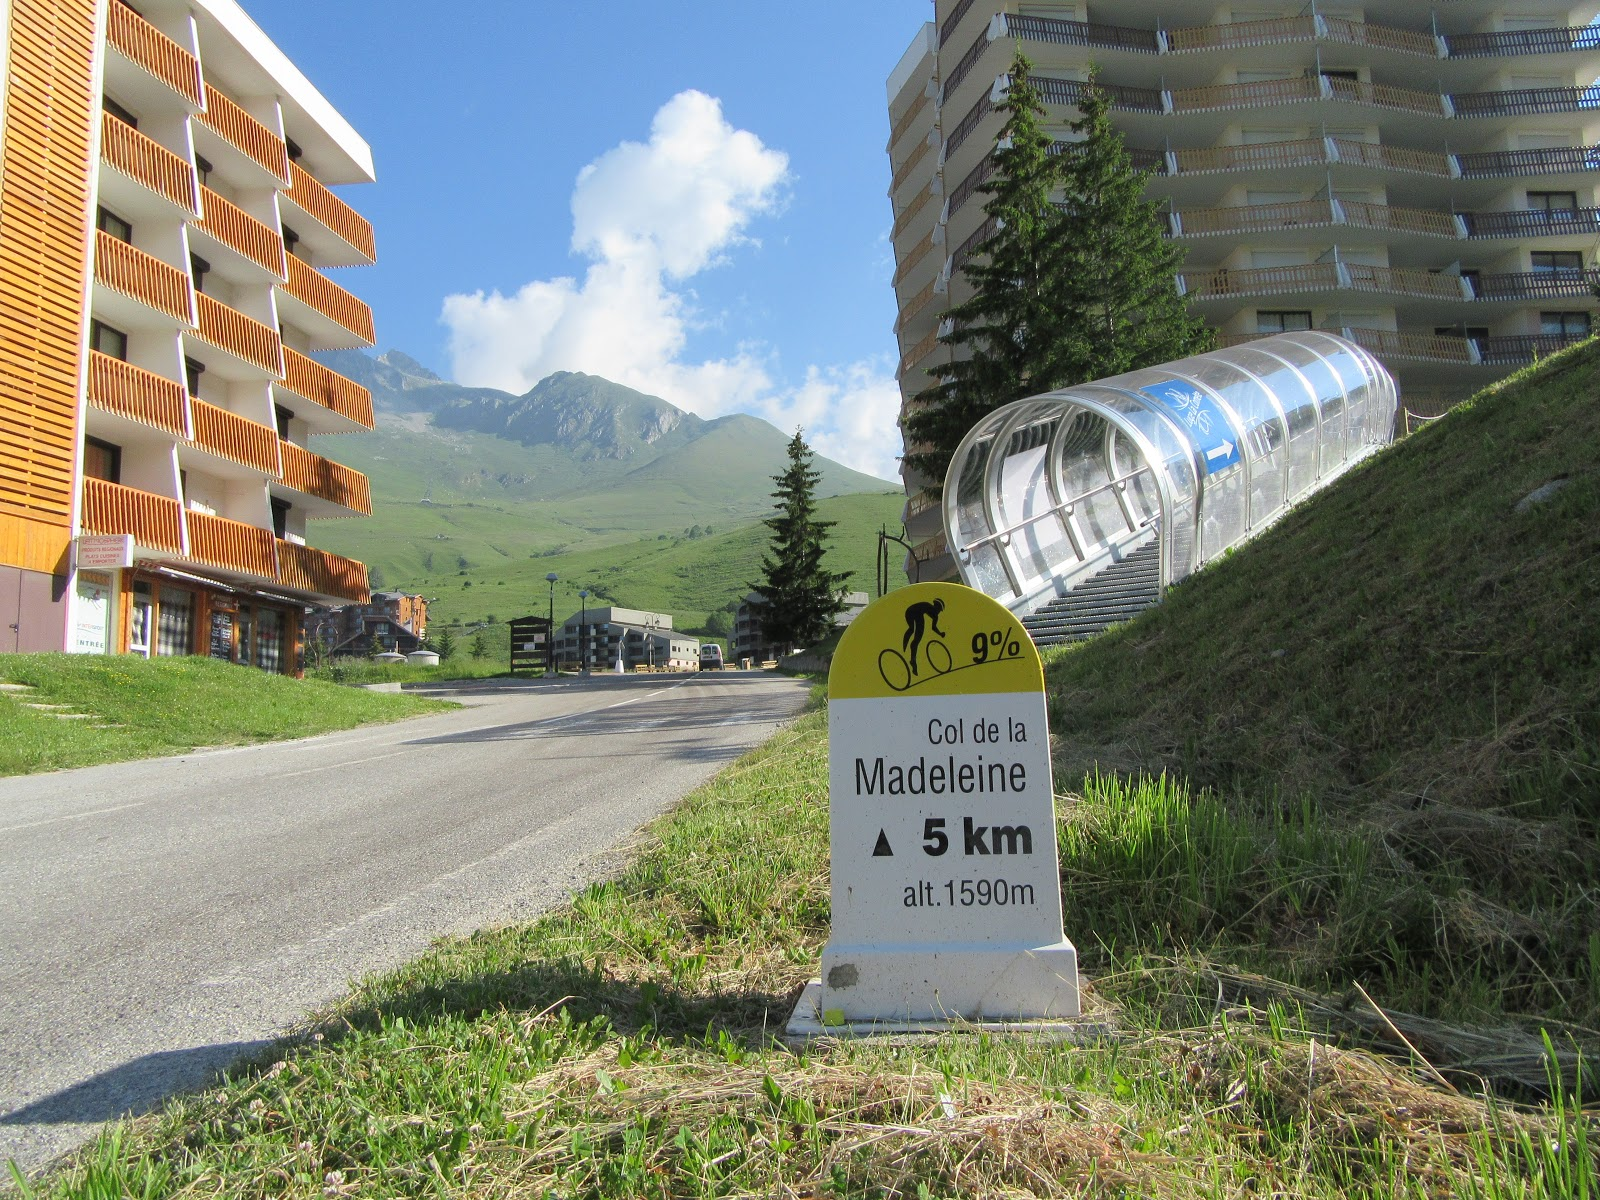 Bicycle ride of Col de Madeleine from La Chambre  - ski resort Longchamp with road, mountain and kilometer marker